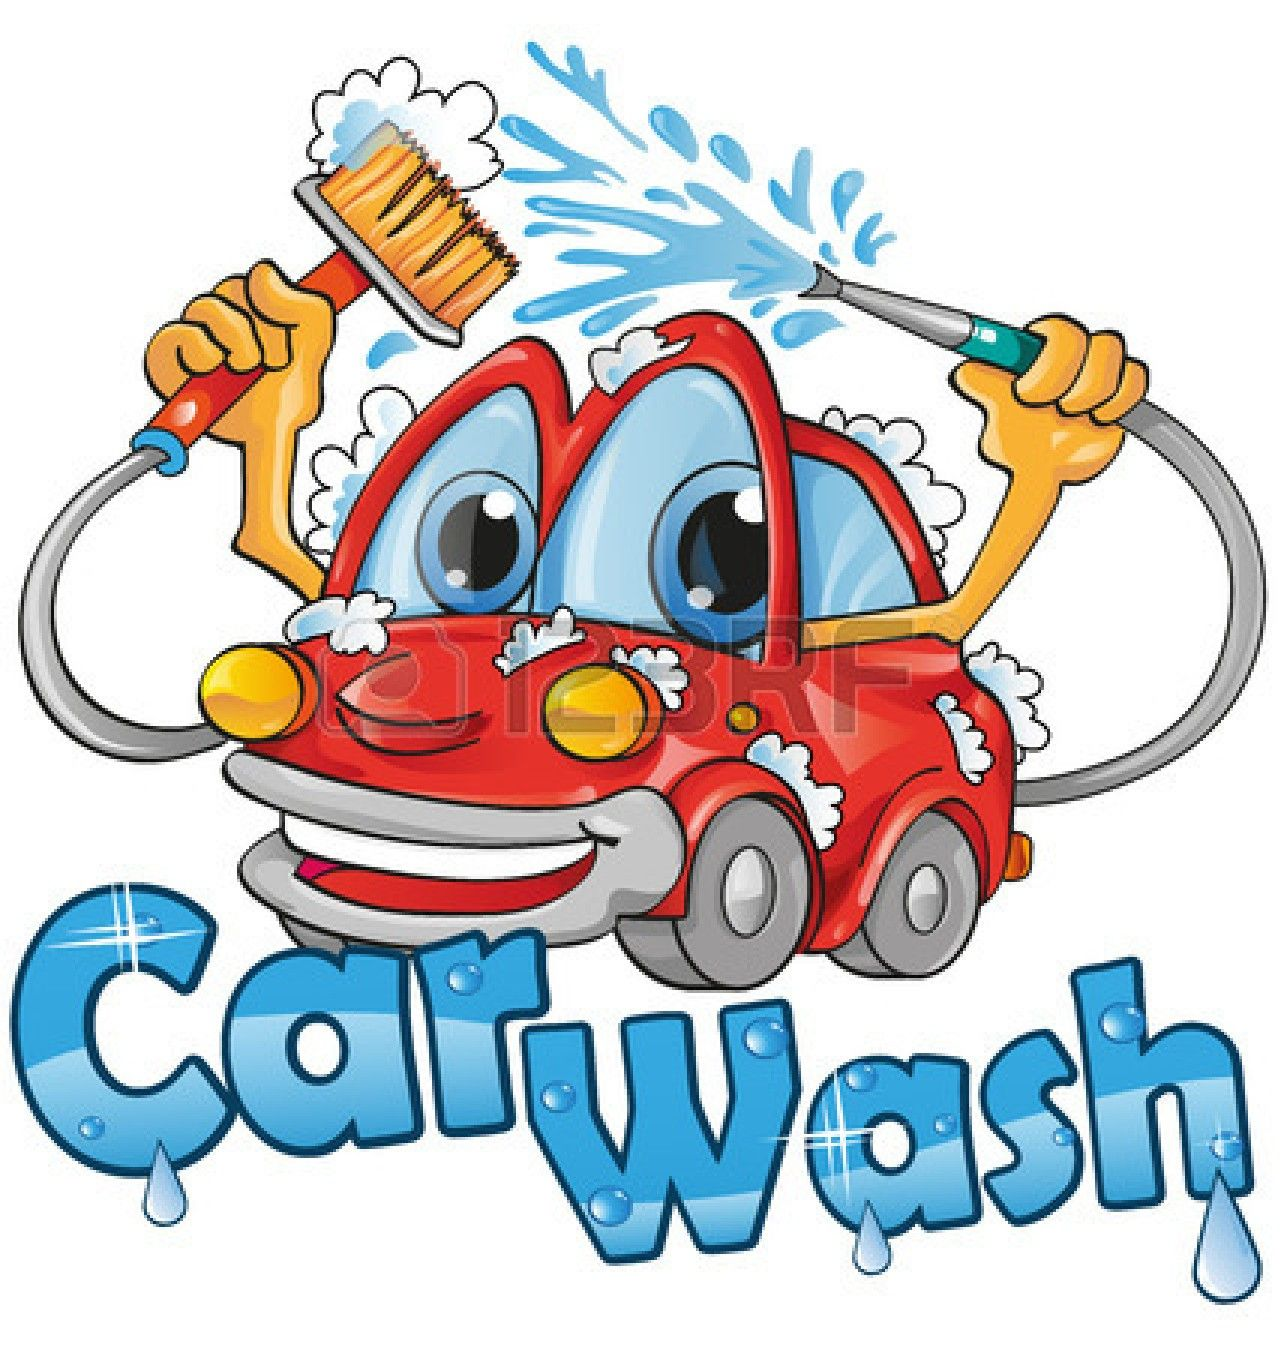 car wash fundraiser car wash fundraiser clipart neon signs all rh pinterest com fundraising clipart png fundraising goal clipart